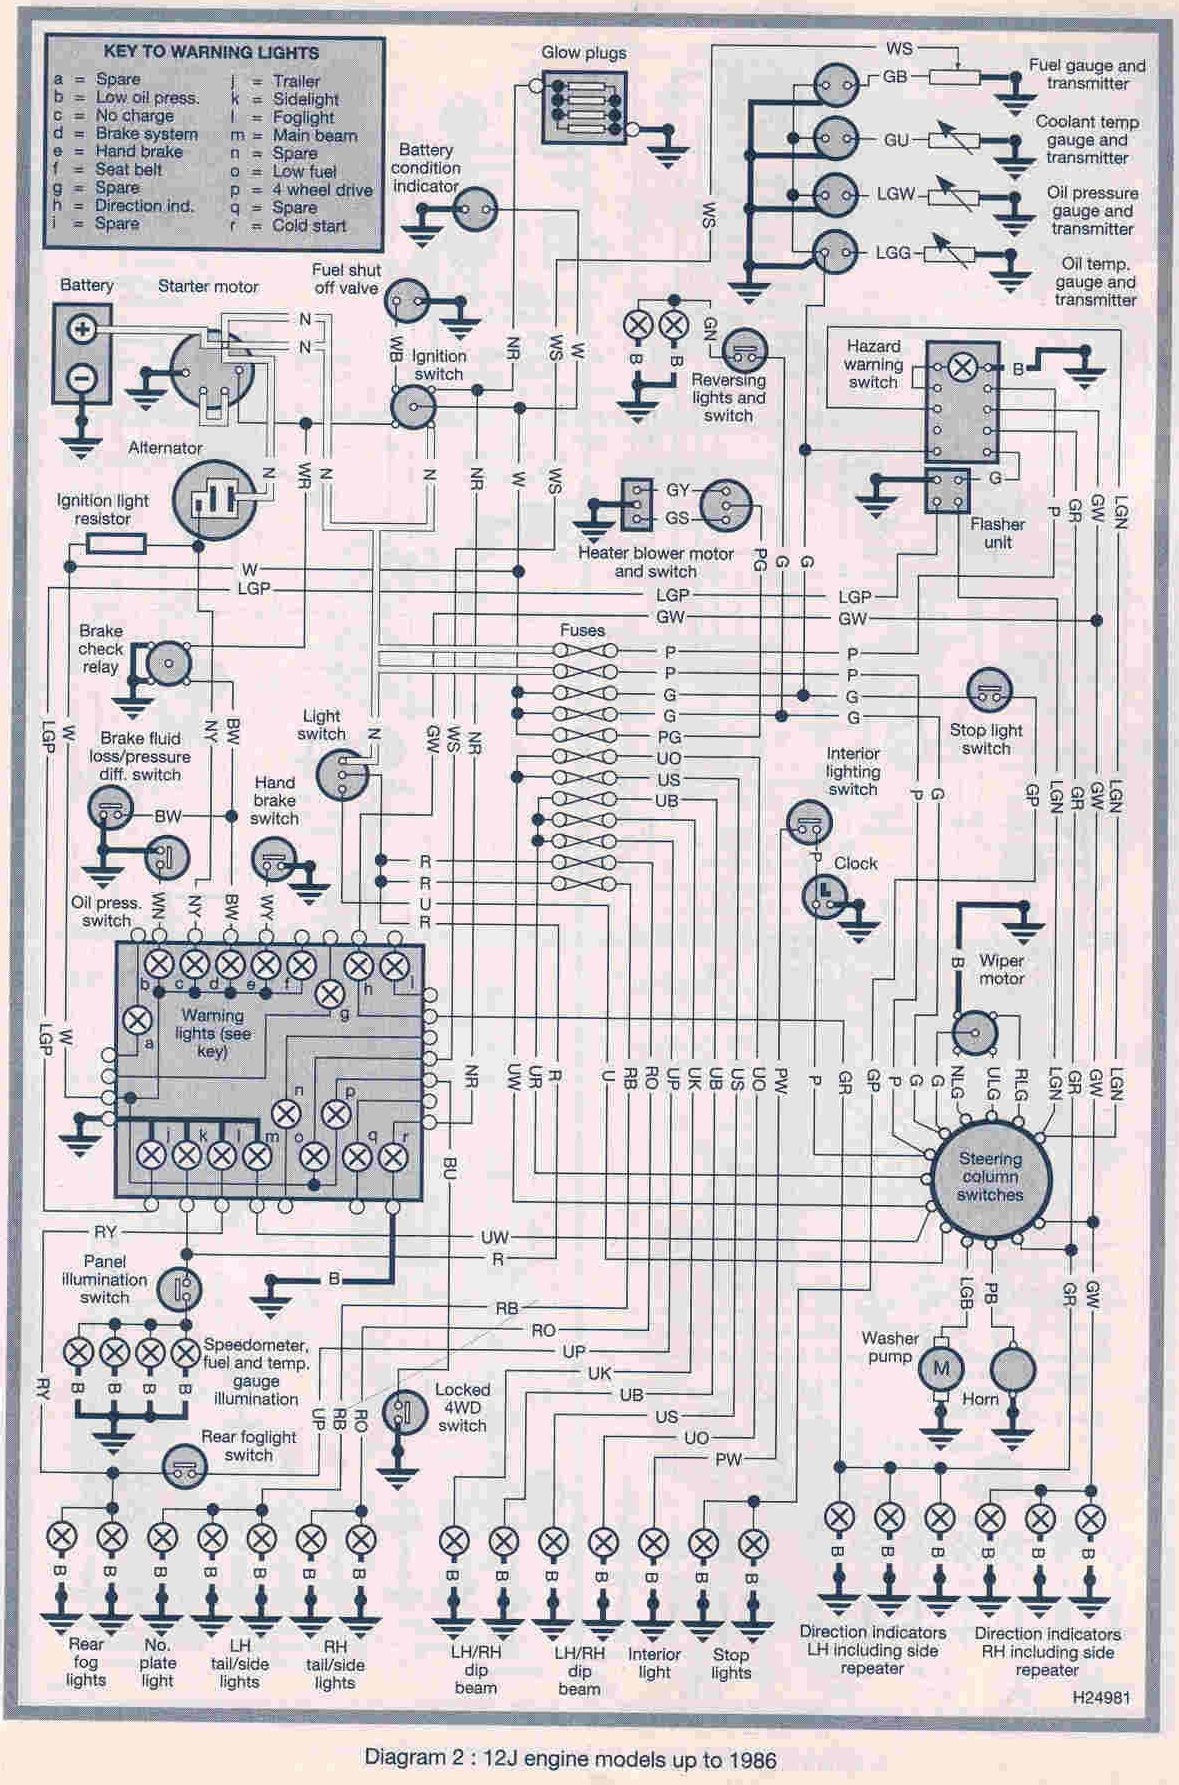 Land Rover Defender Wiring Diagram Electrical Diagrams Discovery Pdf Help Requested With 1990 V8 Loom Forum Rh Forums Lr4x4 Com